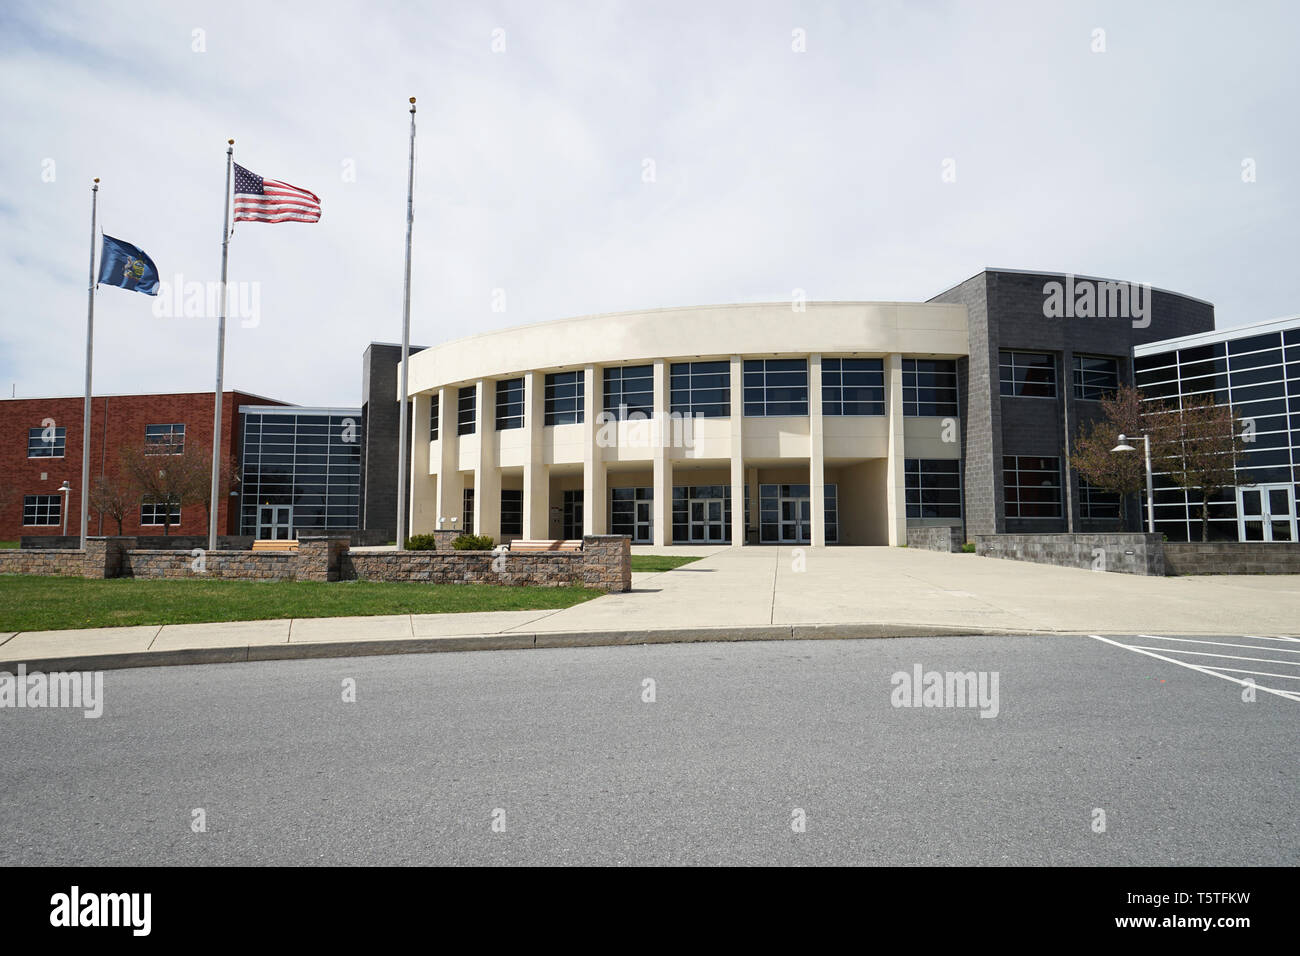 Exterior of a modern school building with copyspace.  There is an American flag and a Pennsylvania state flag on the flagpoles. - Stock Image